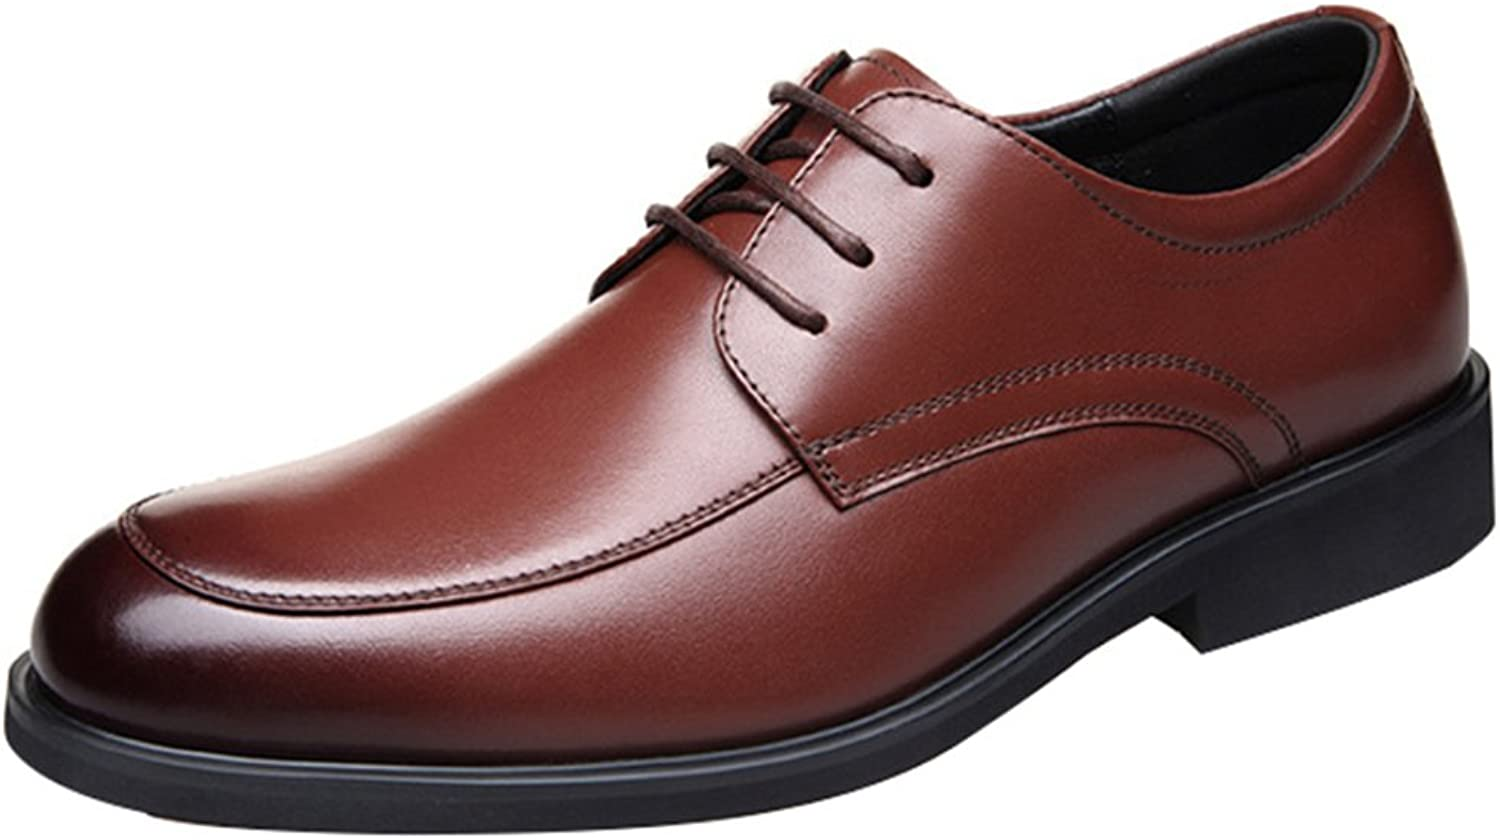 Men's Formal Leather shoes Business Casual Derby shoes